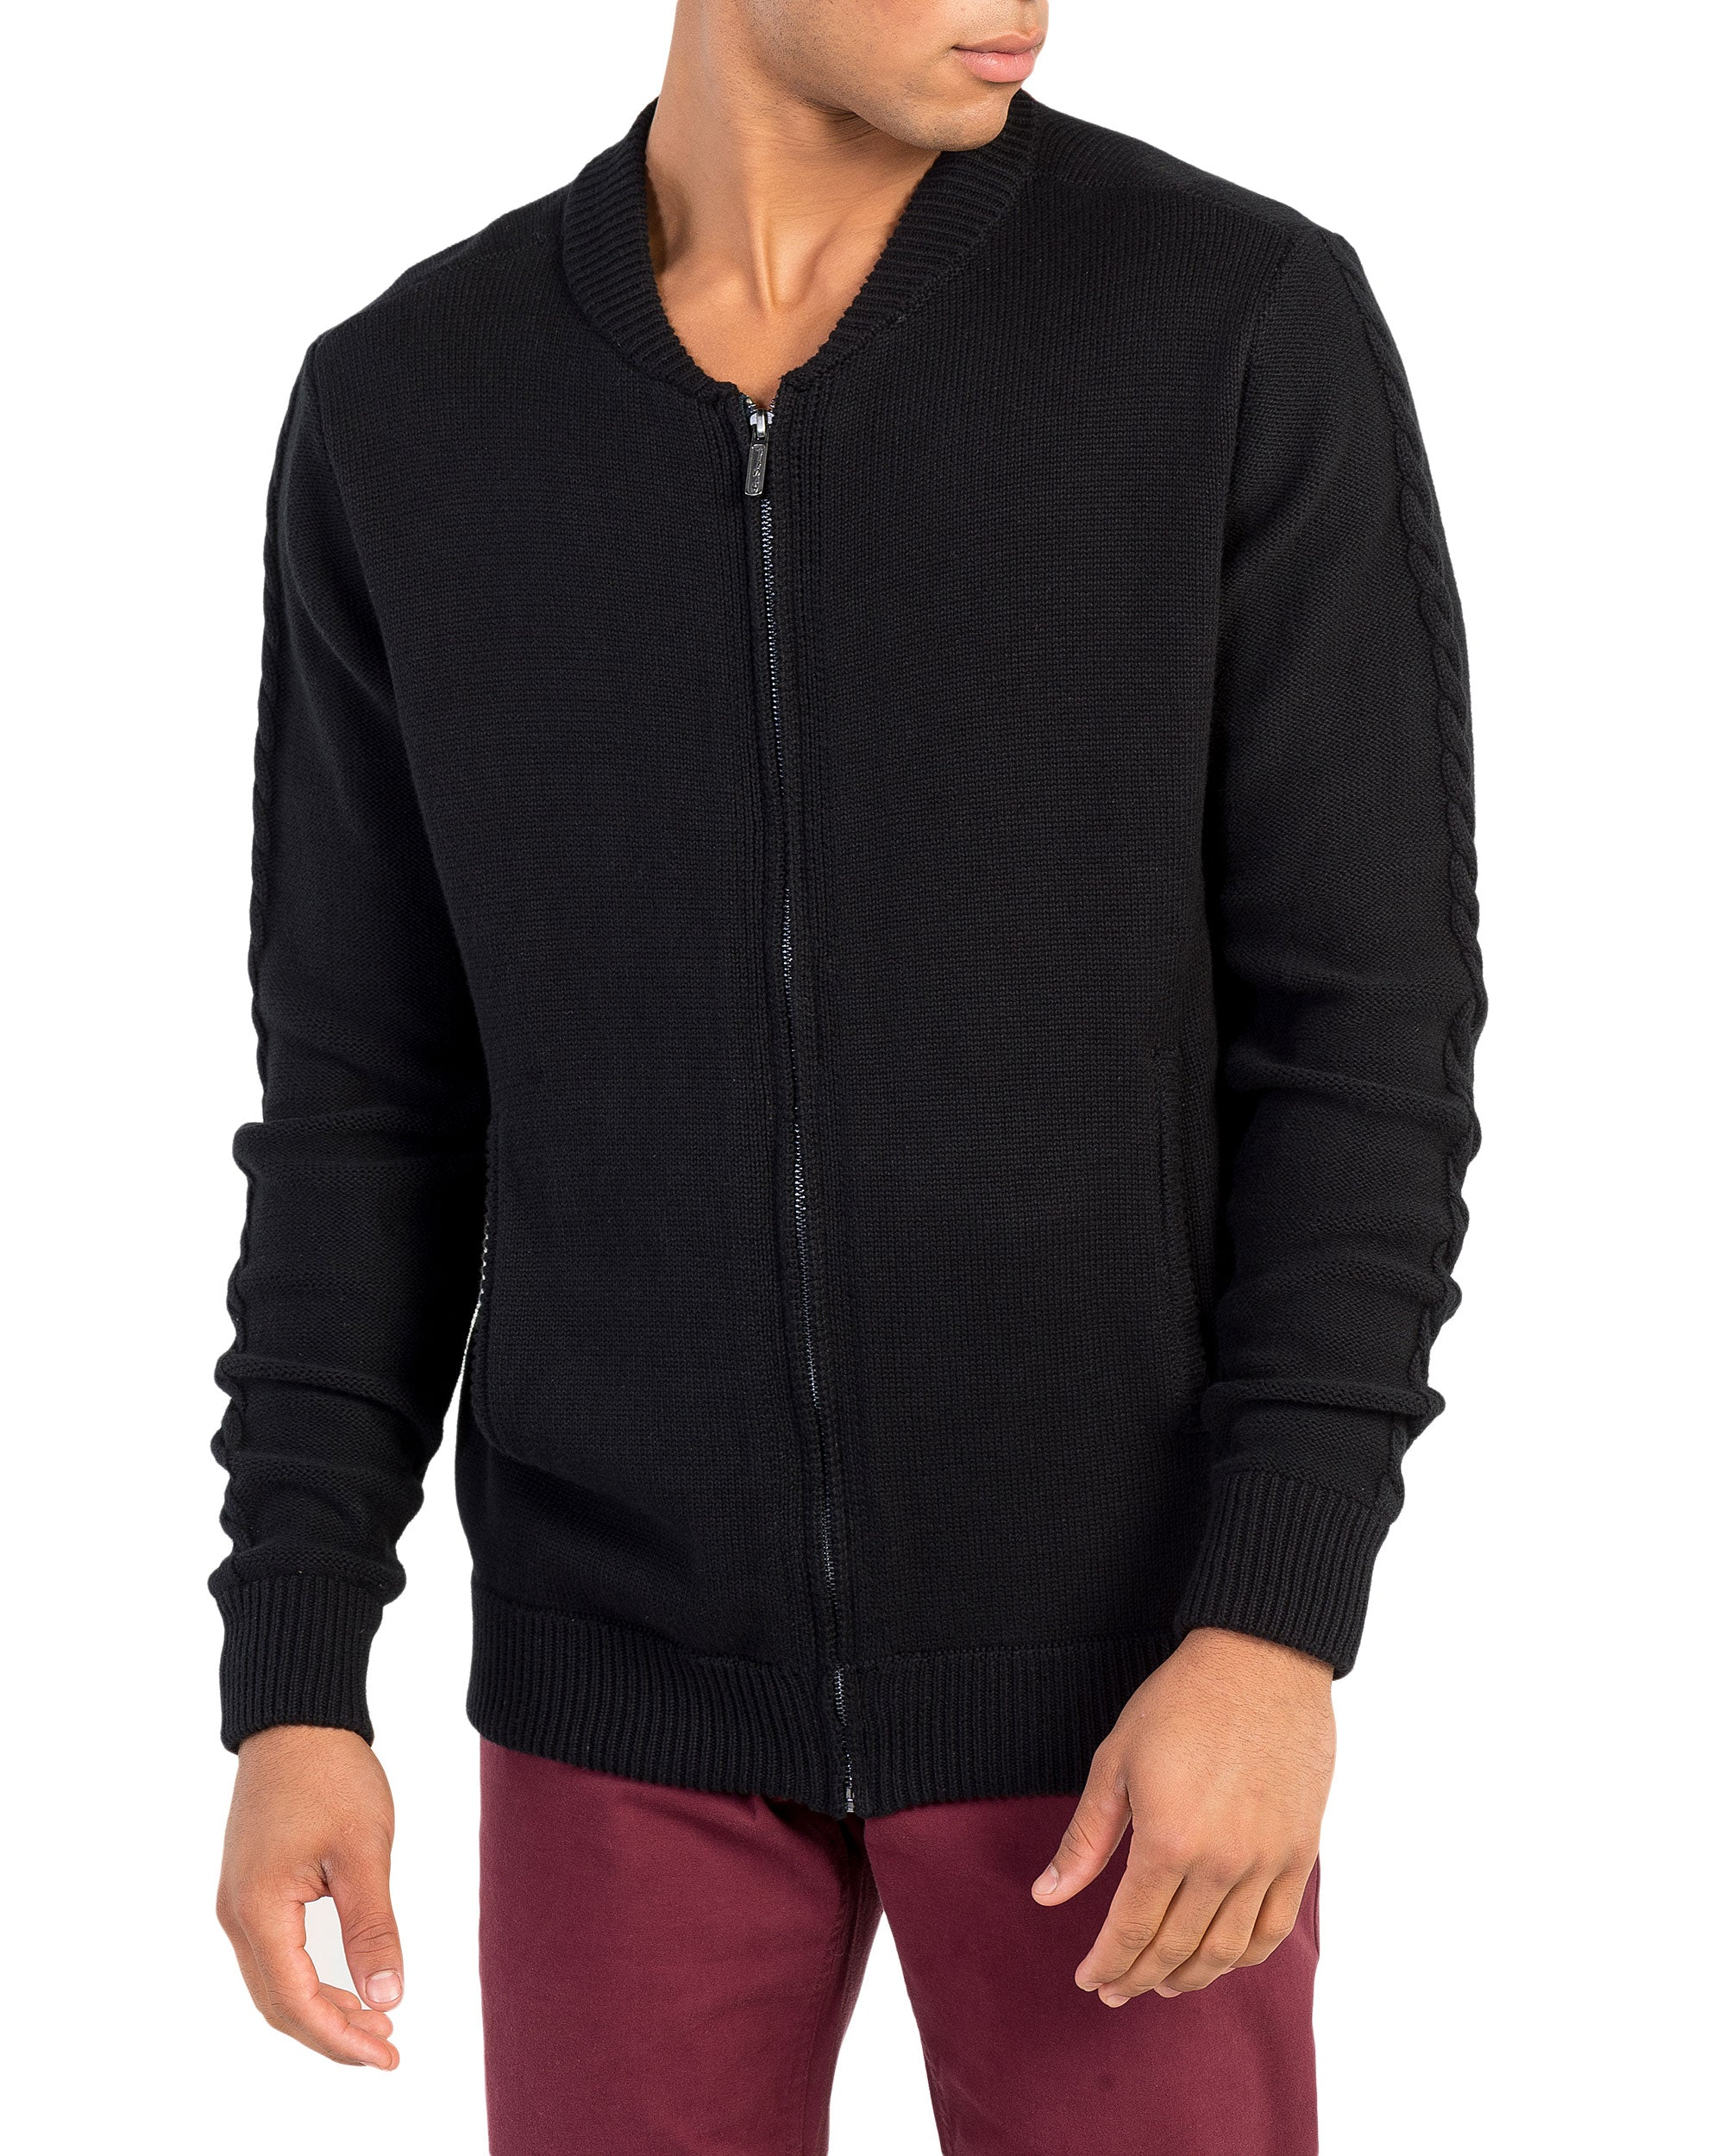 Cable Sleeve Bomber Sweater - Black